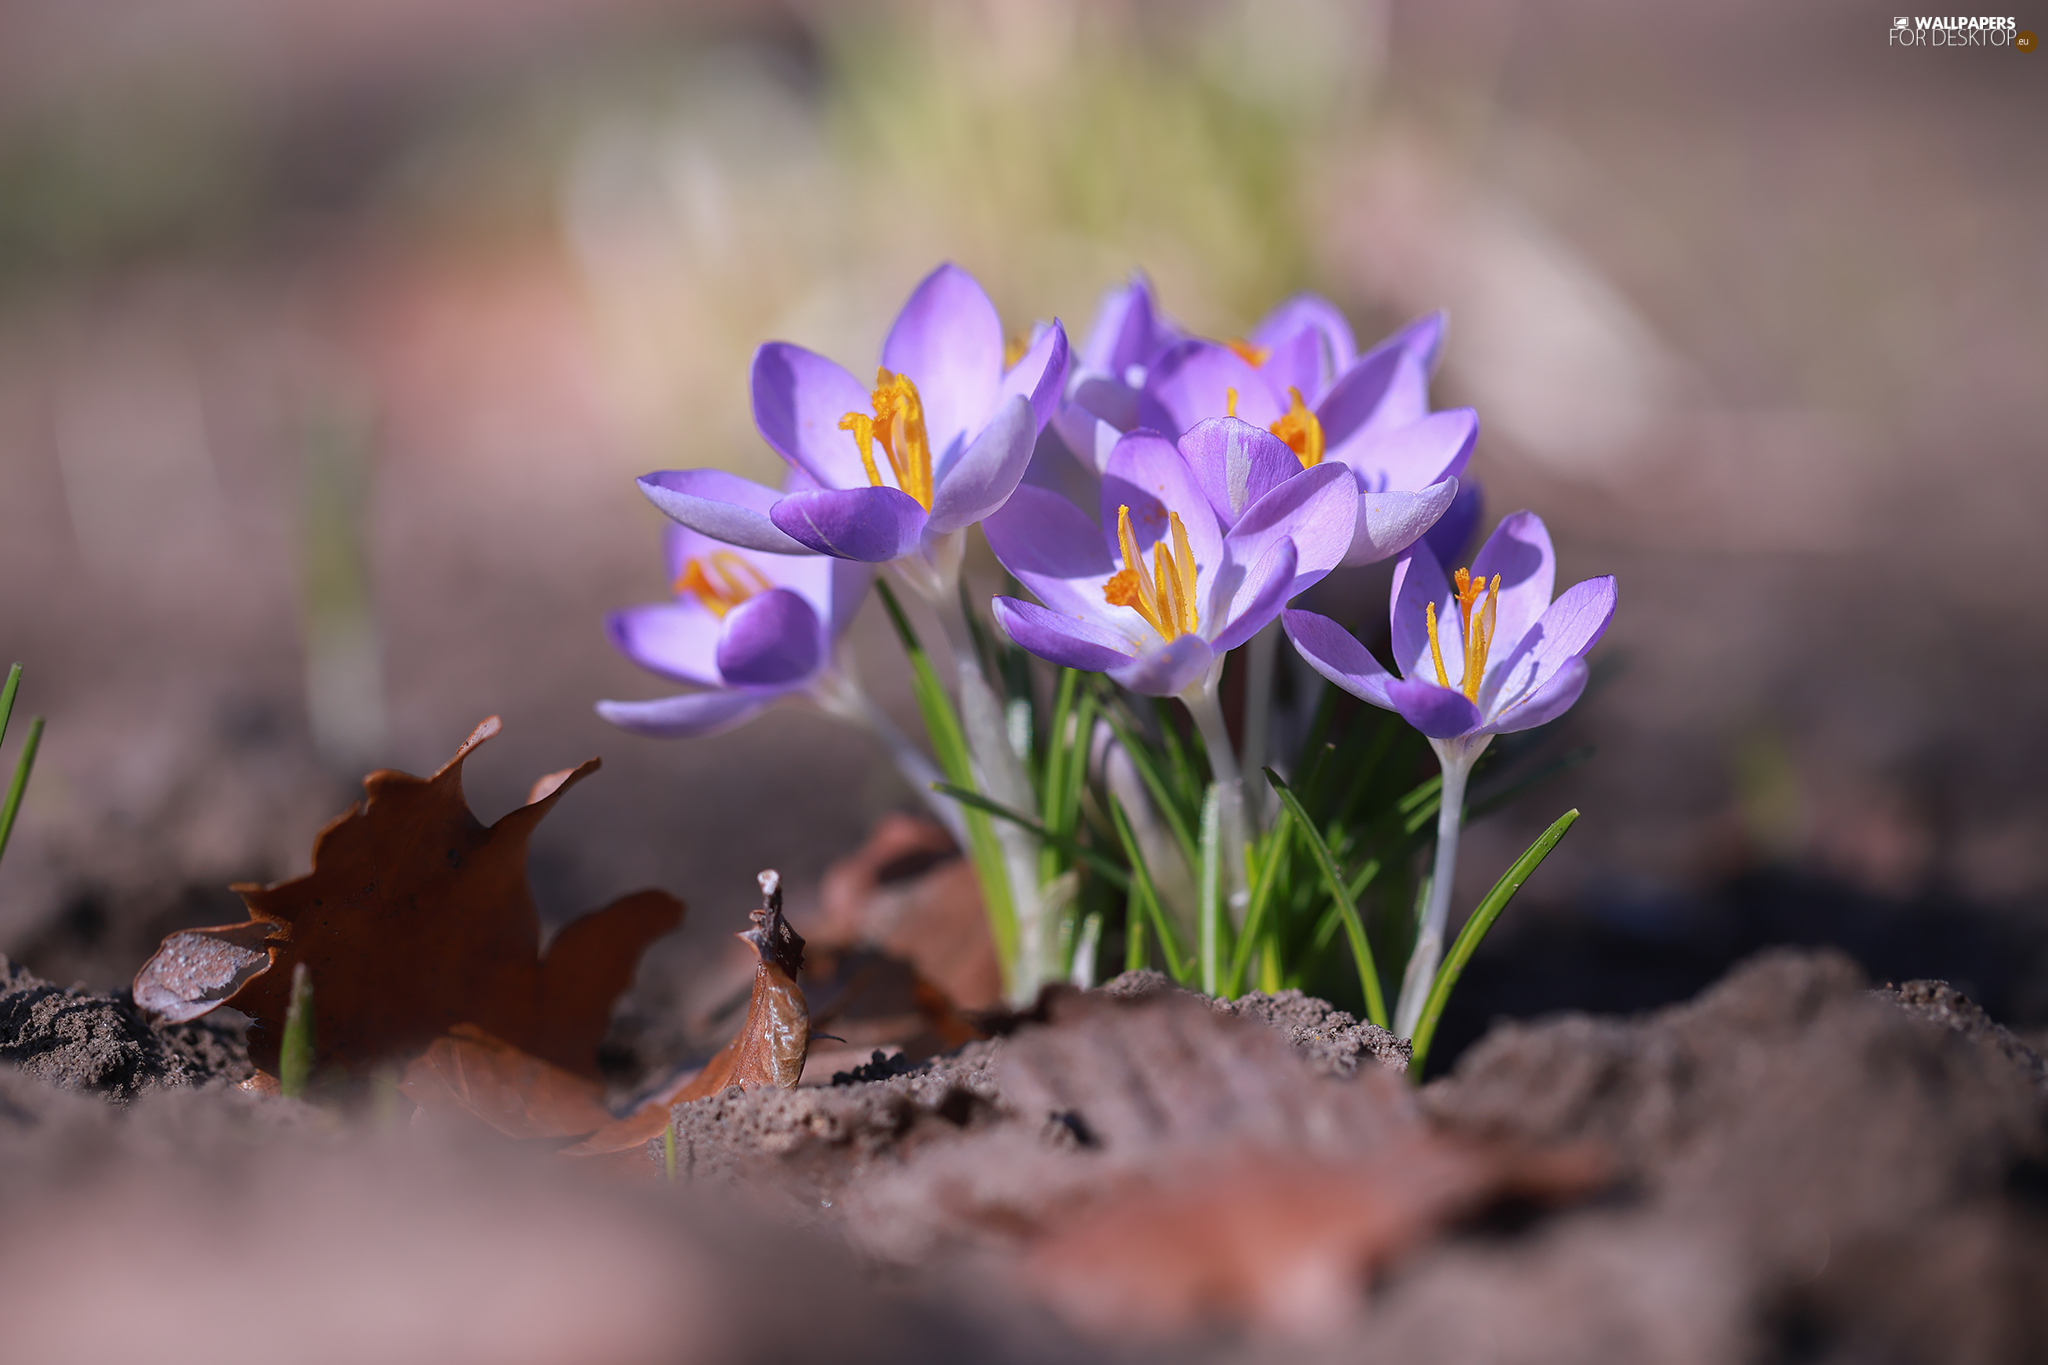 cluster, Leaf, crocuses, Flowers, lilac